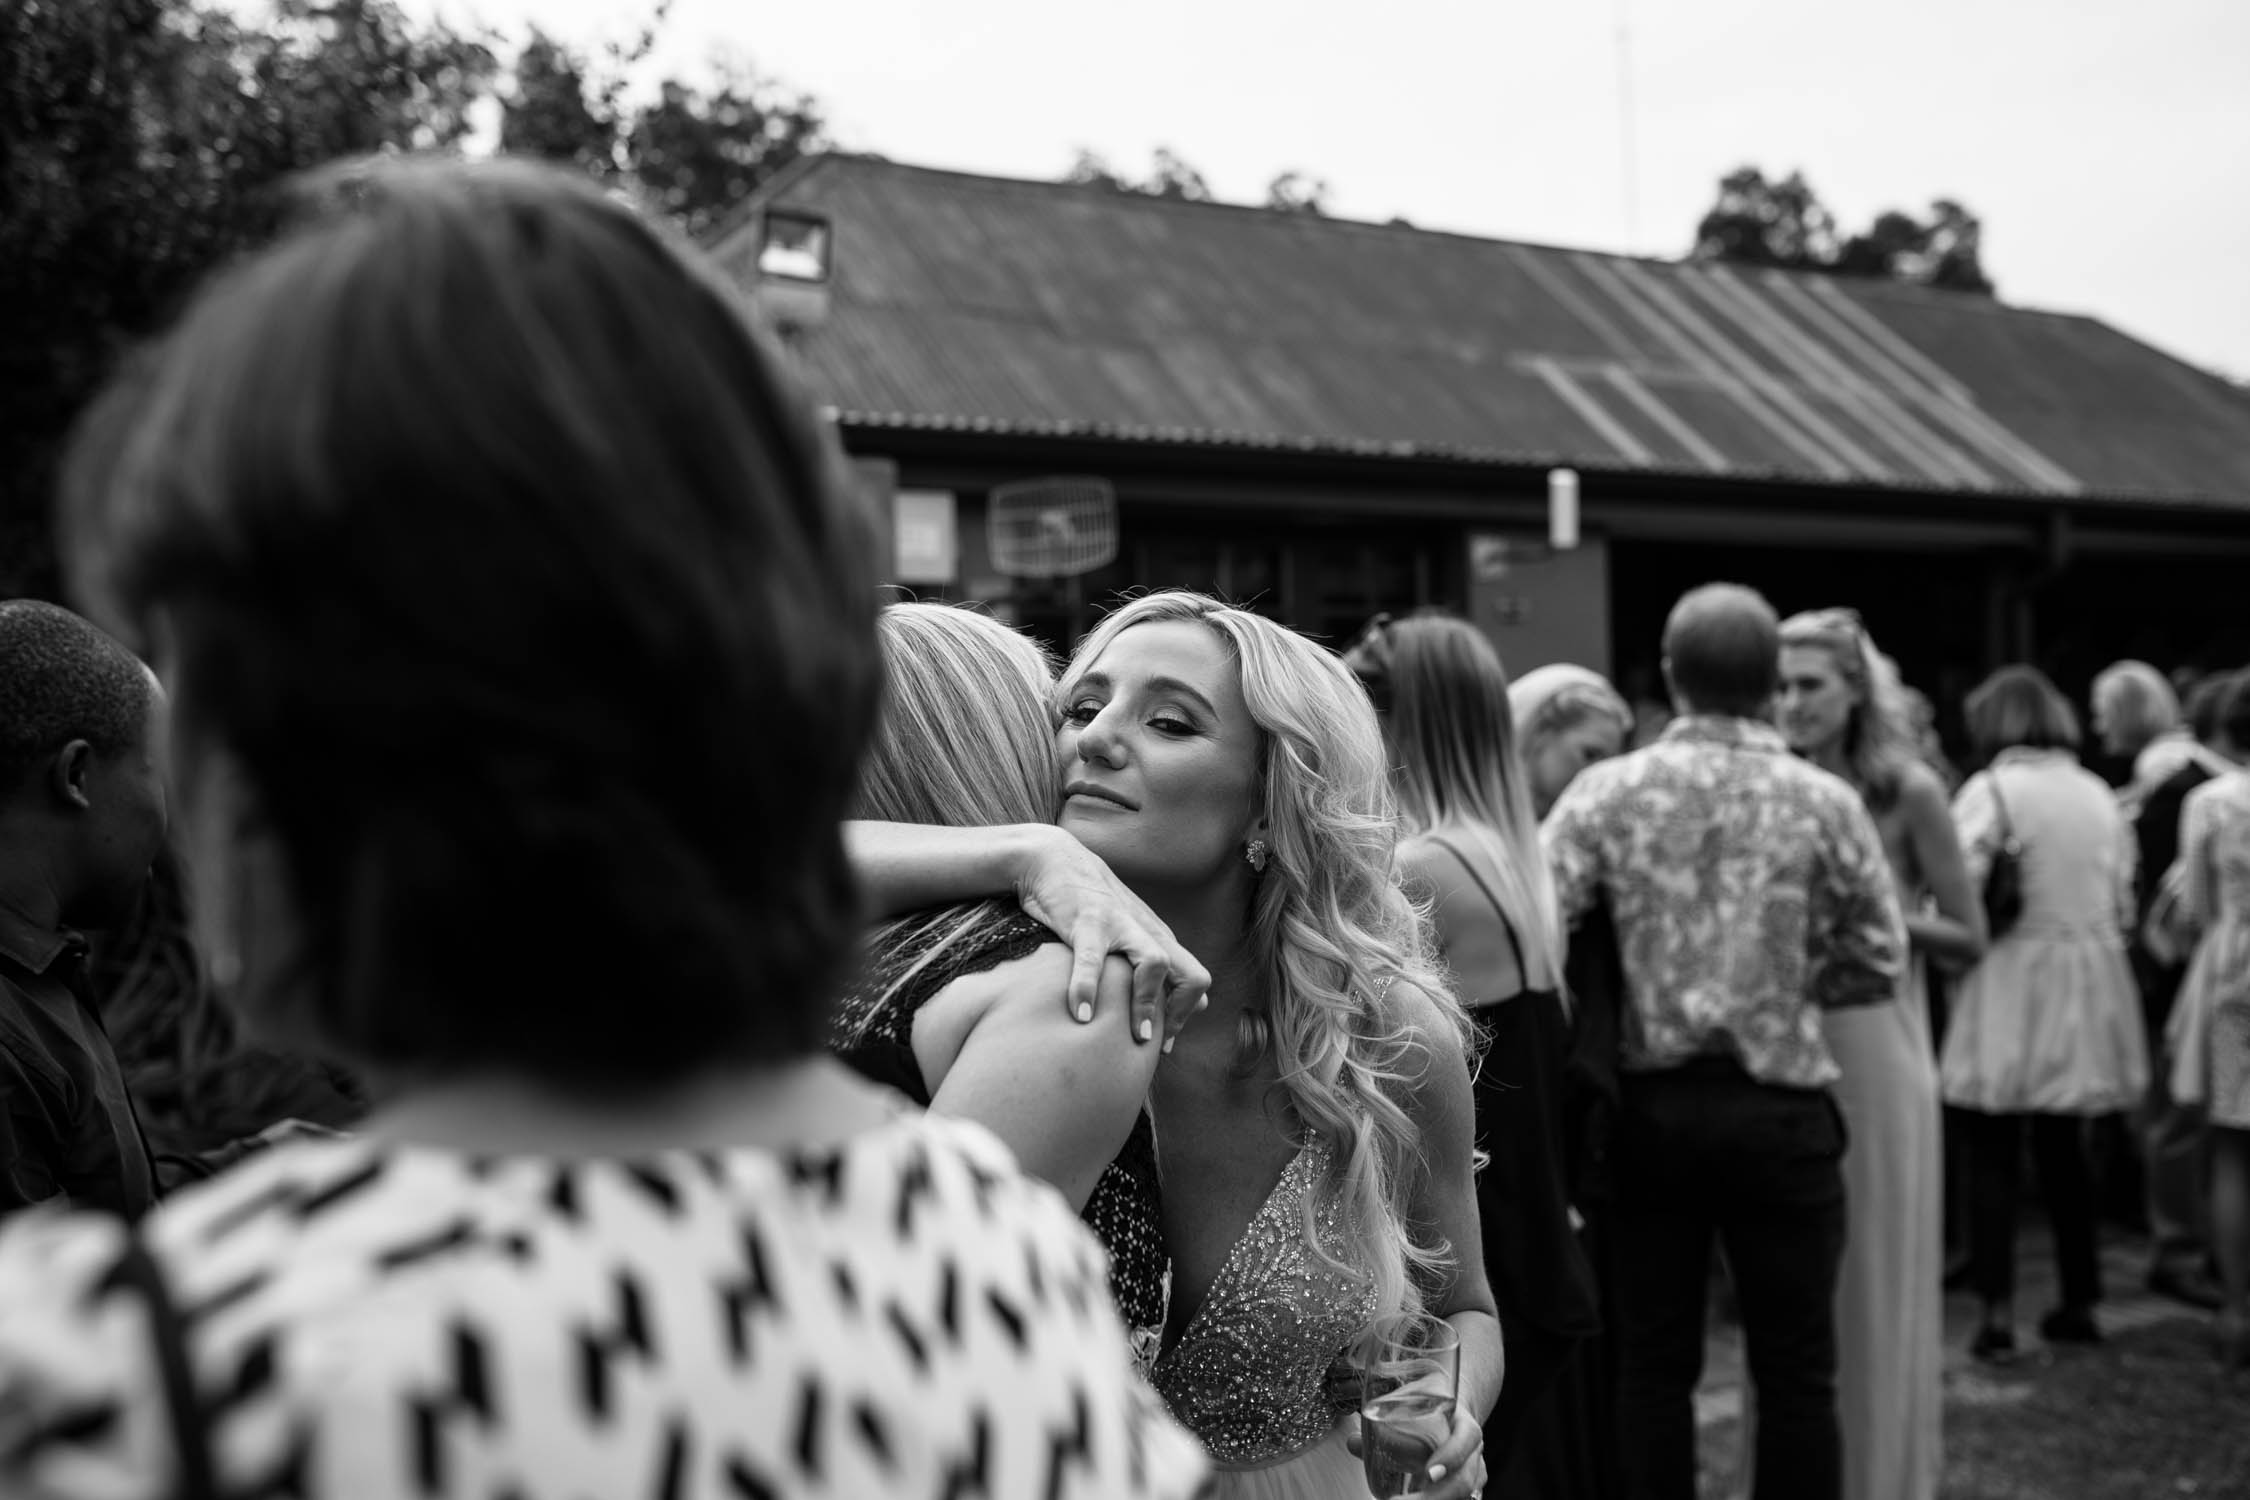 Bride hugging a friend after wedding ceremony. Friend is congratulating her on her marriage.